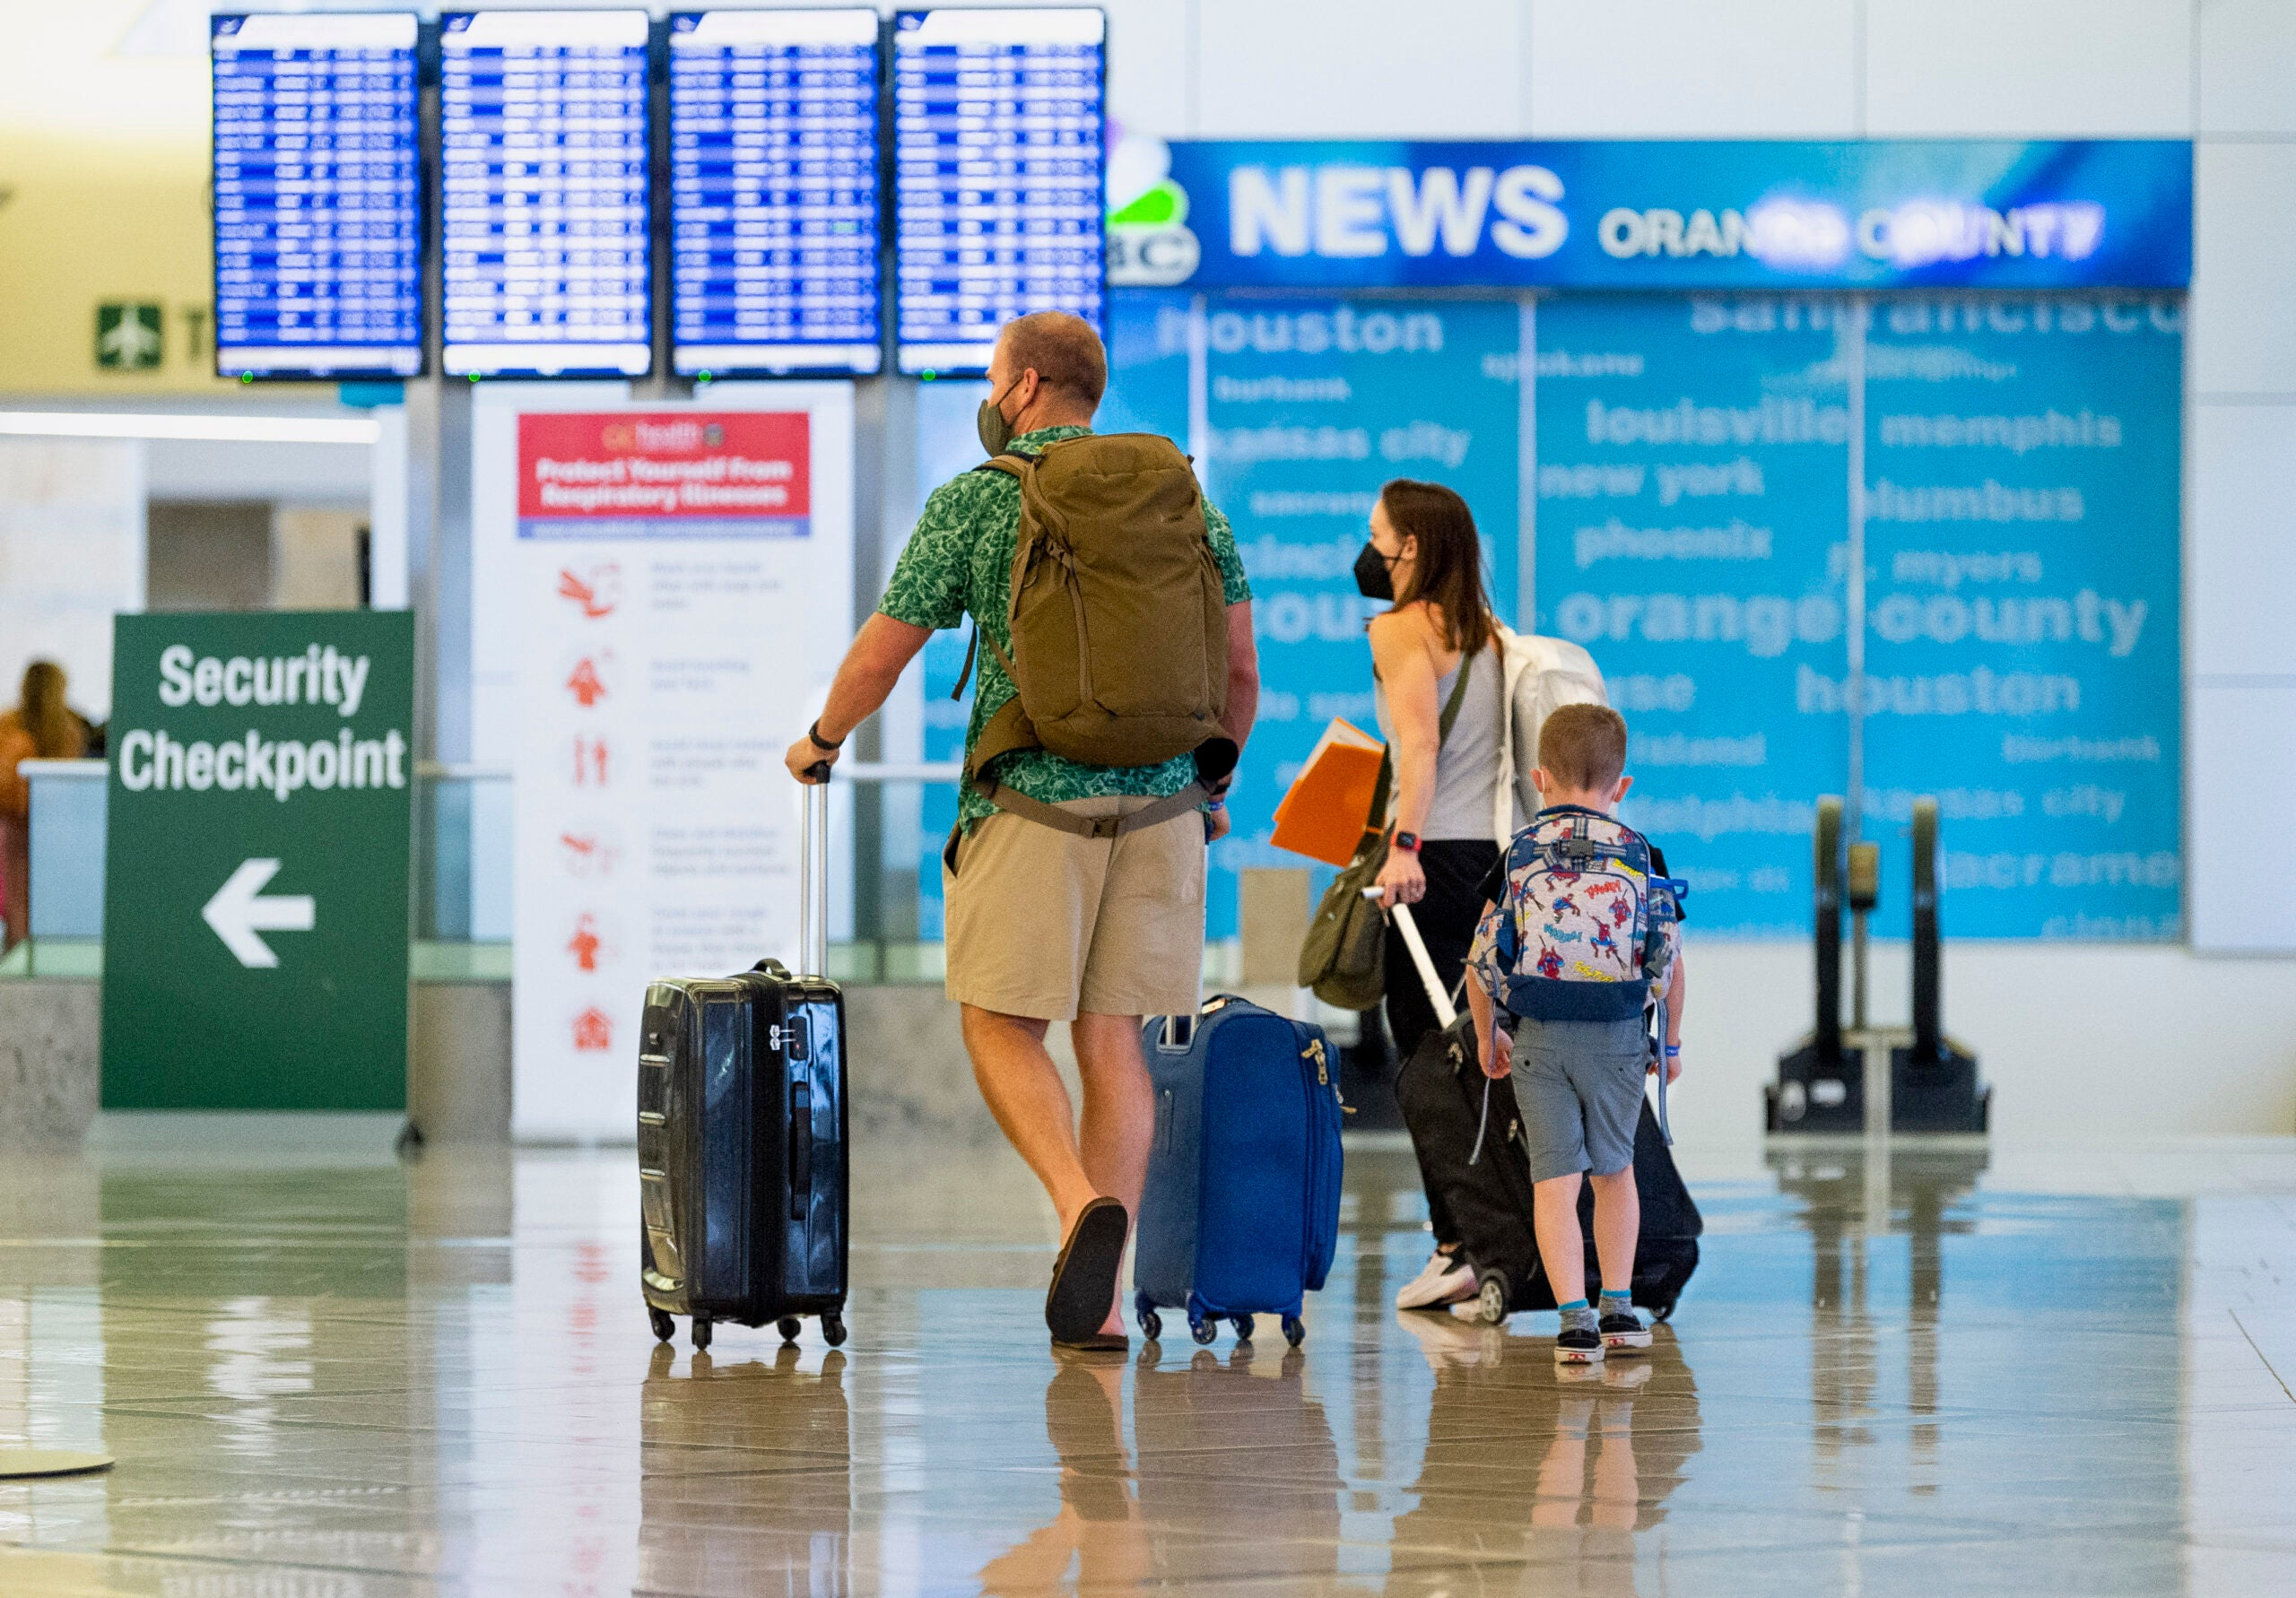 Closest allies urge US to relax travel bans - The Points Guy